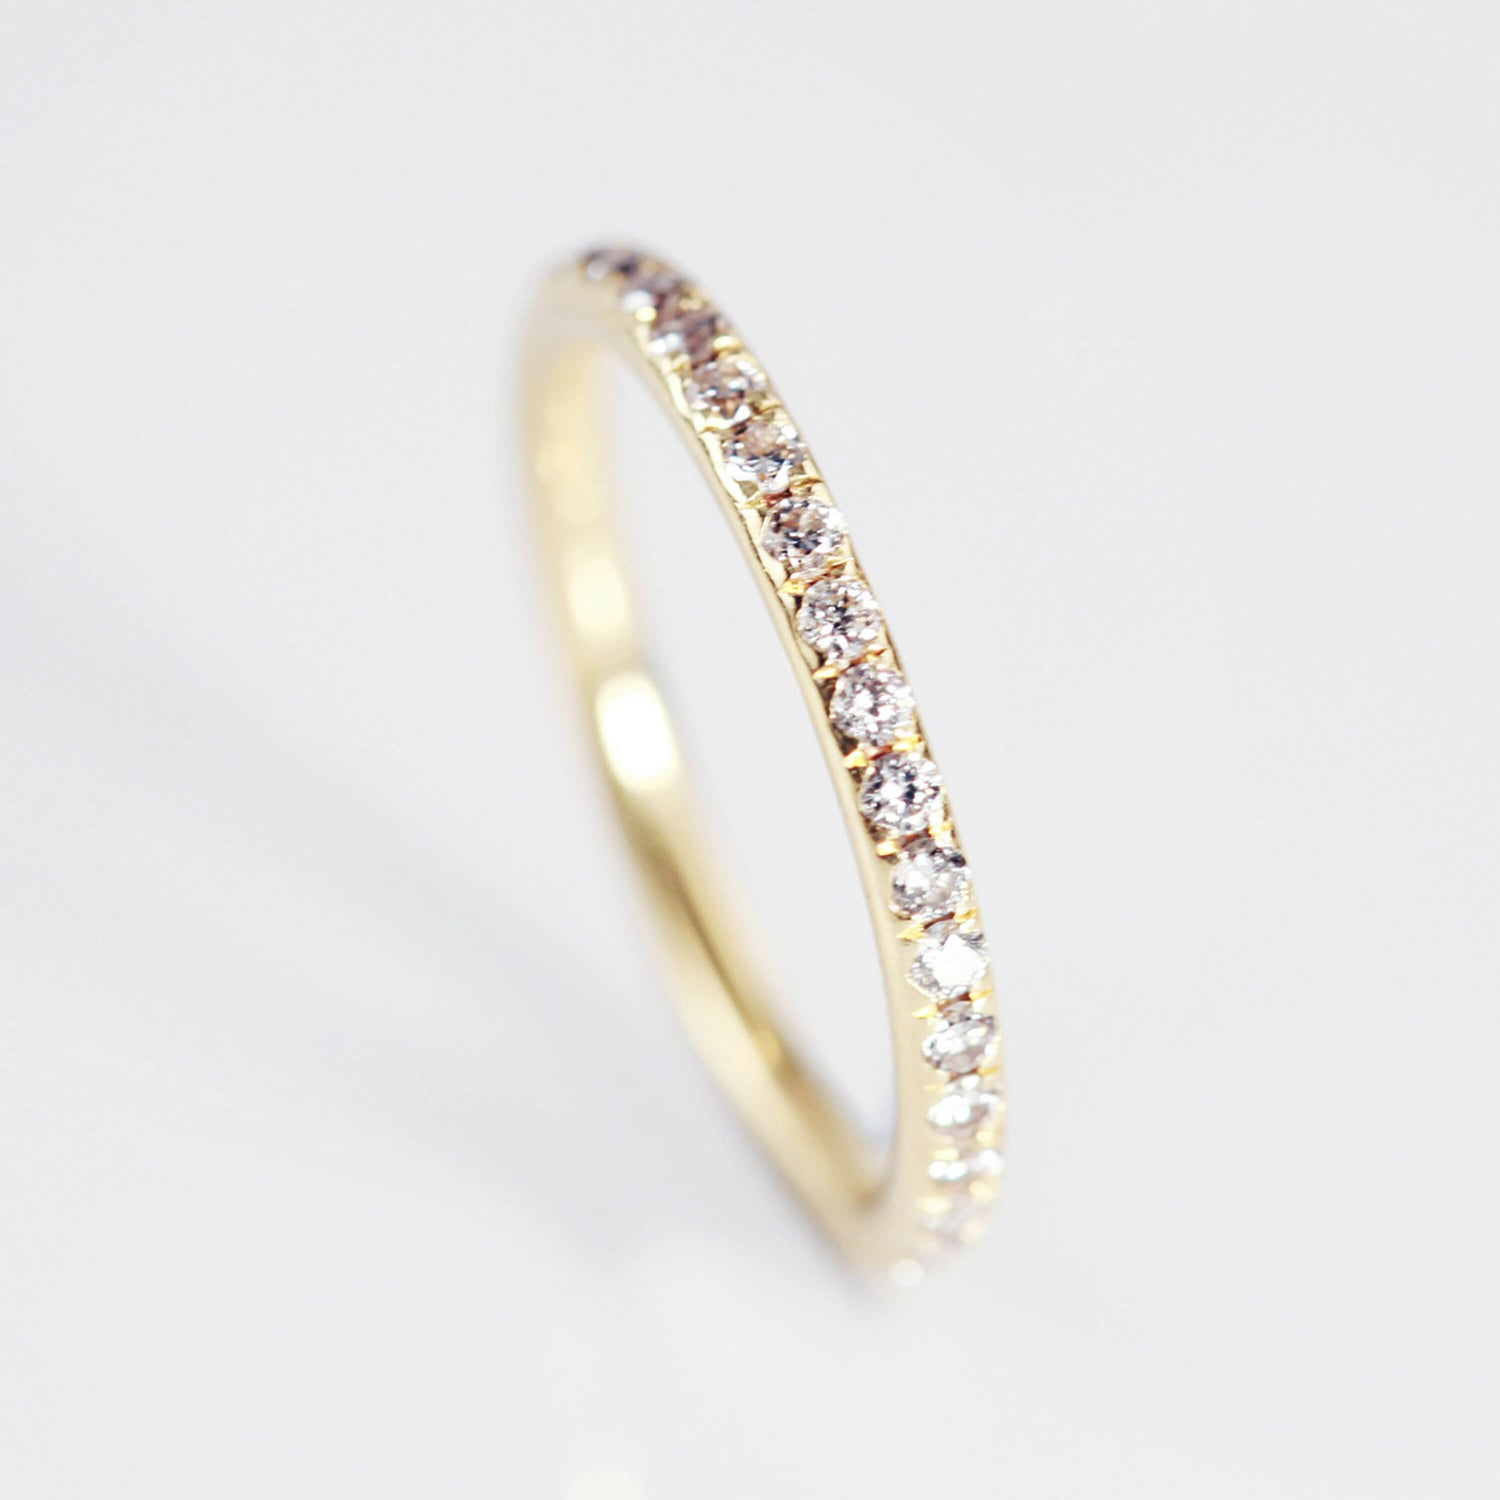 Pave Diamond Set Wedding Ring